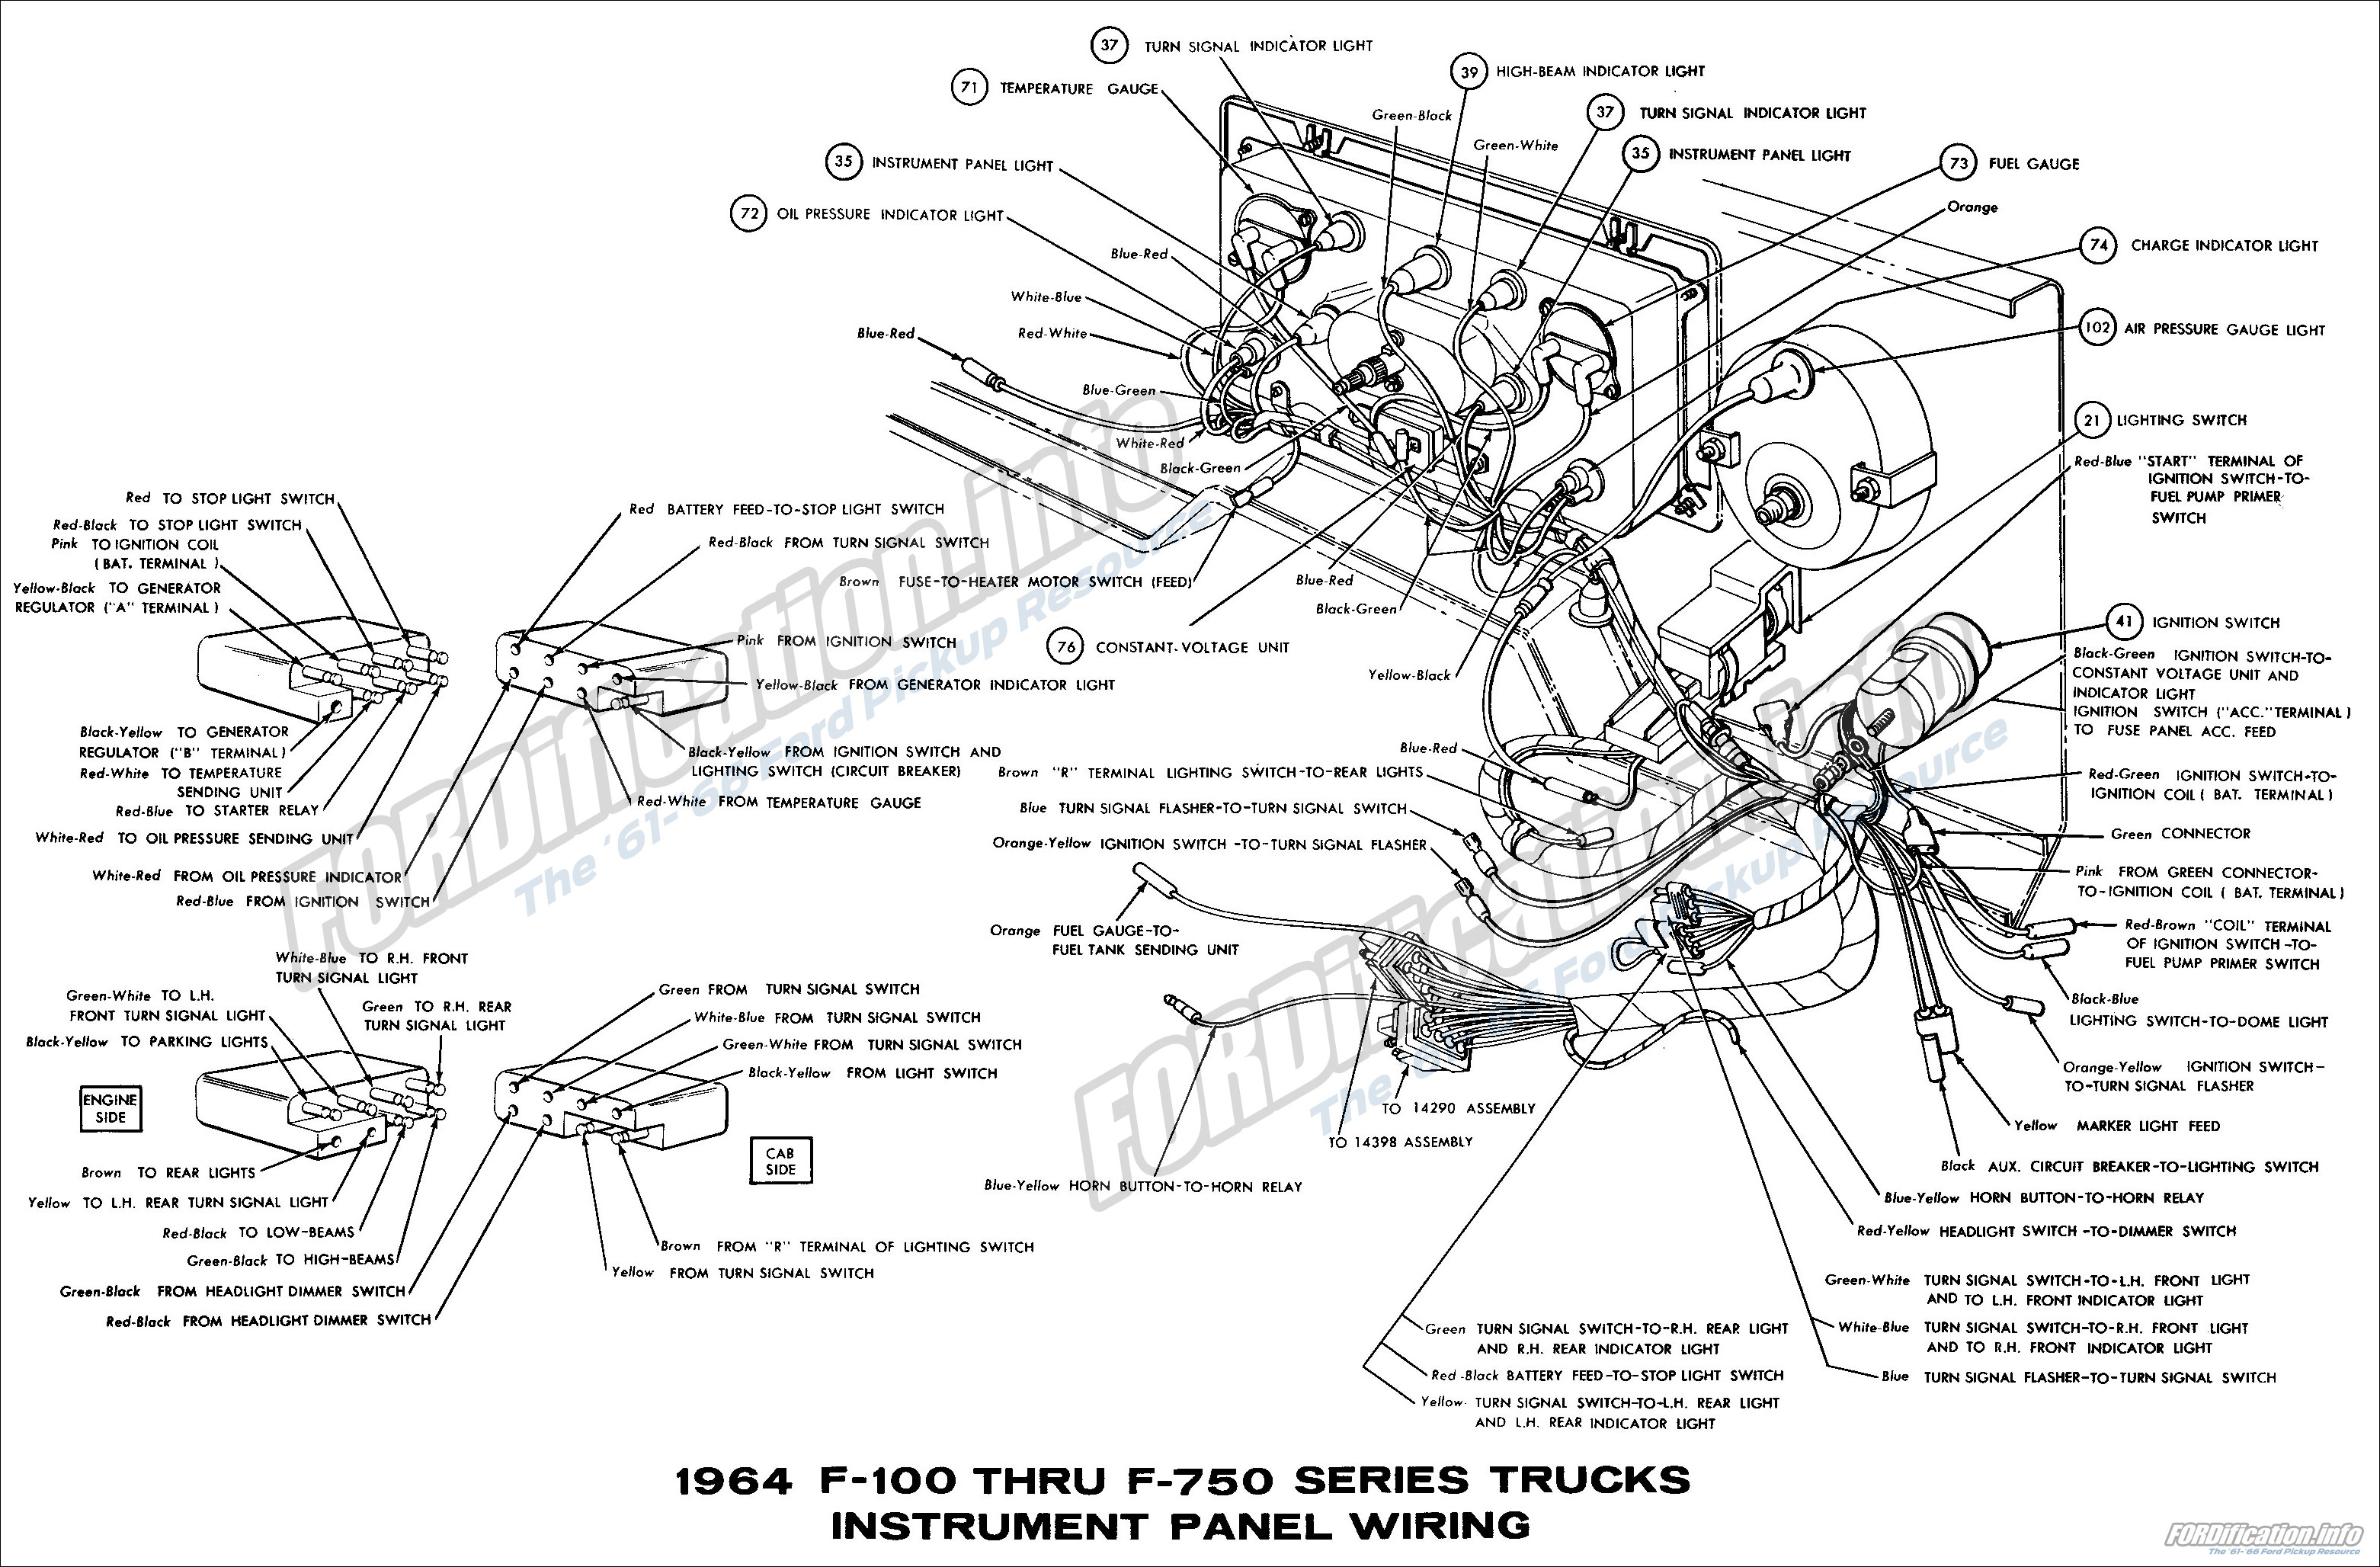 instrument panel wiring diagram